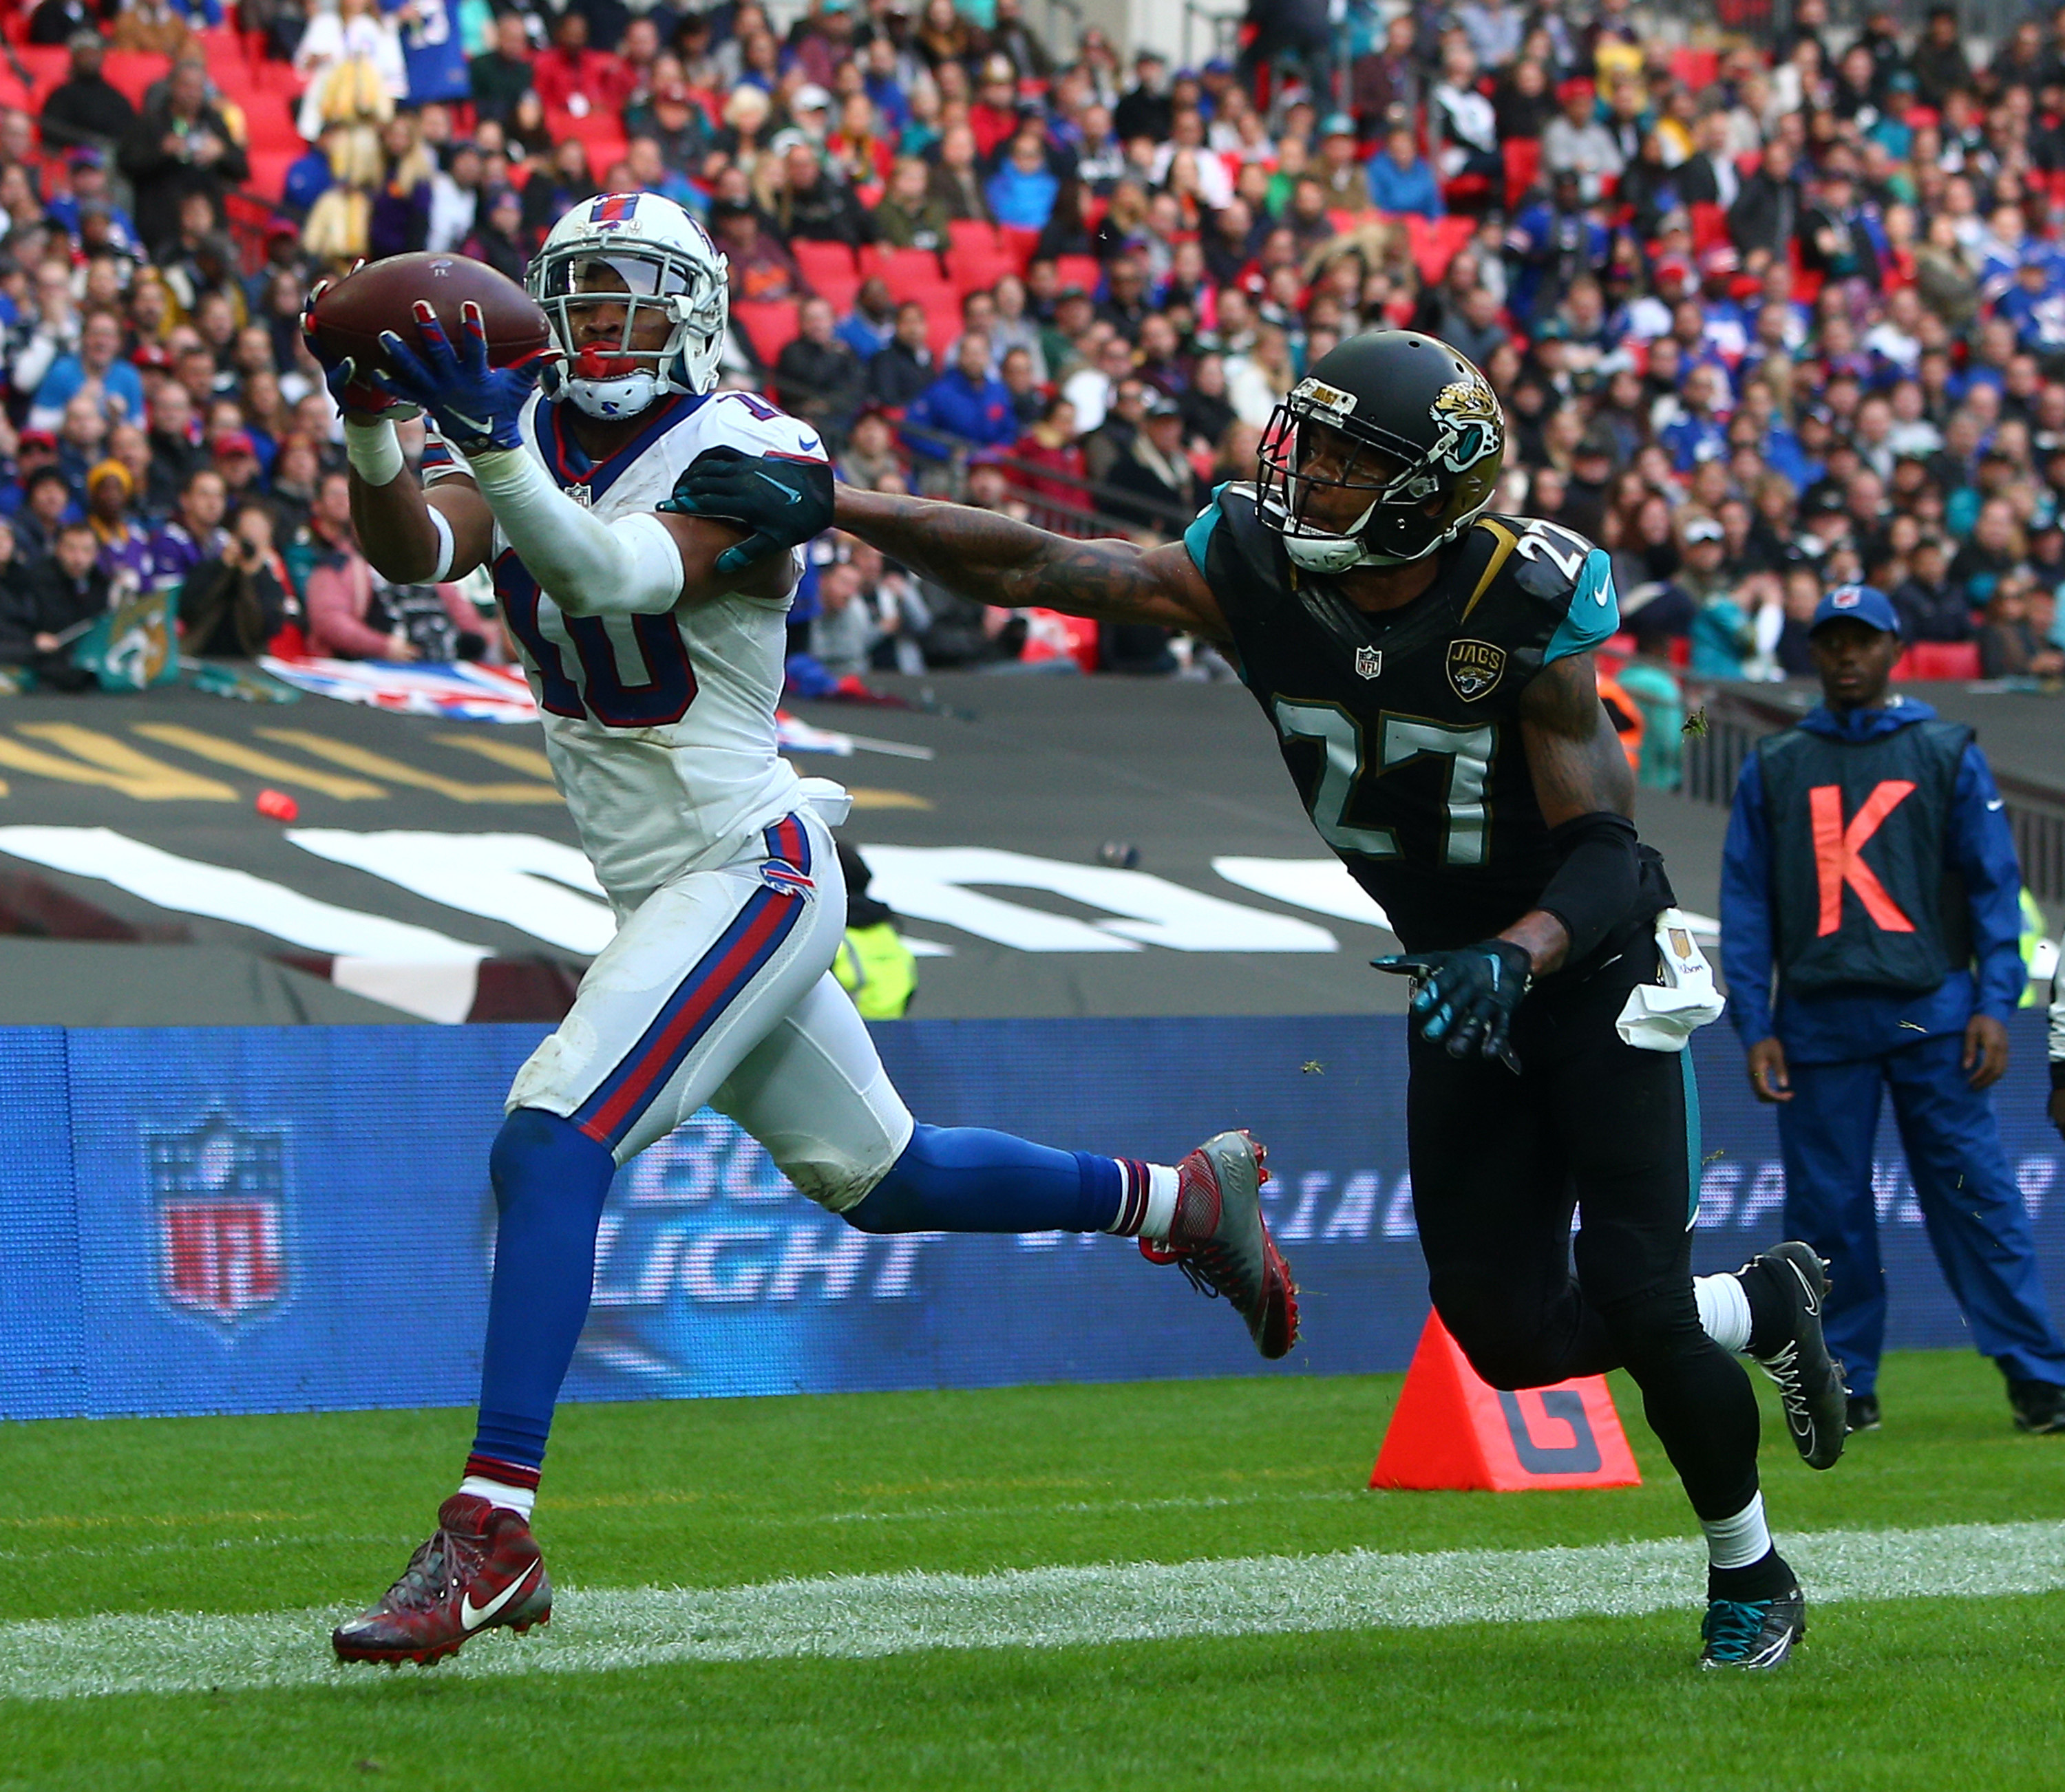 LONDON, ENGLAND - OCTOBER 25: Robert Woods #10 of Buffalo Bills scores a touchdown during the NFL match between Jacksonville Jaguars and Buffalo Bills at Wembley Stadium on October 25, 2015 in London, England. (Photo by Charlie Crowhurst/Getty Images)